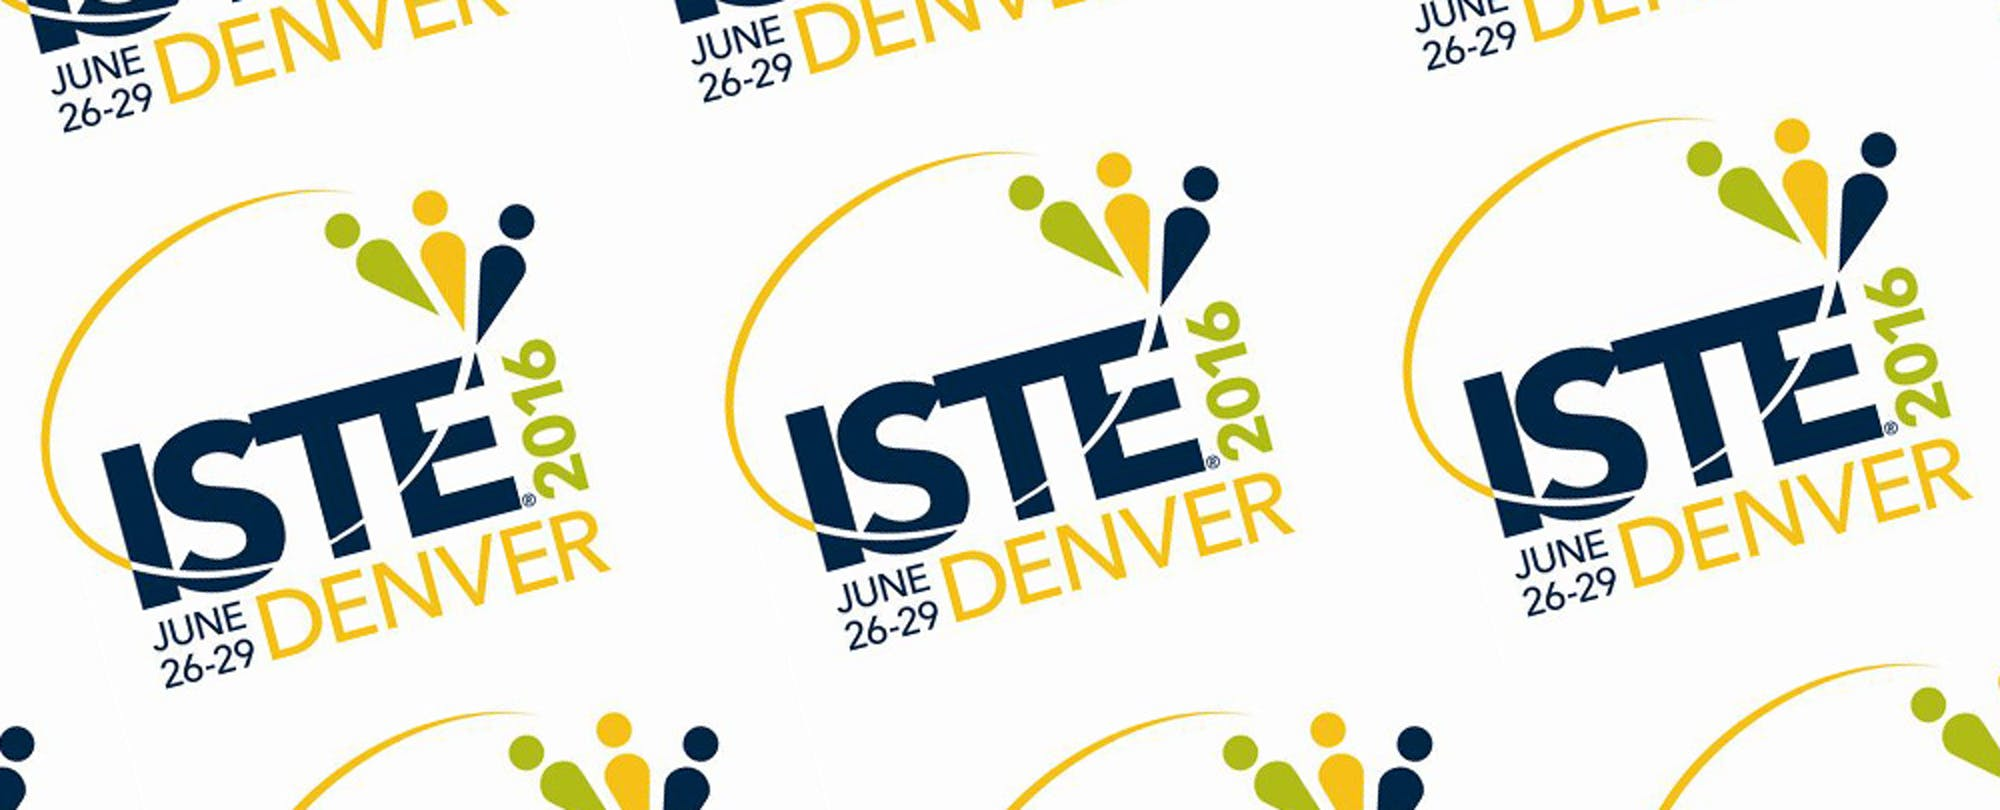 Navigating ISTE 2016: A Cheatsheet for Attendees